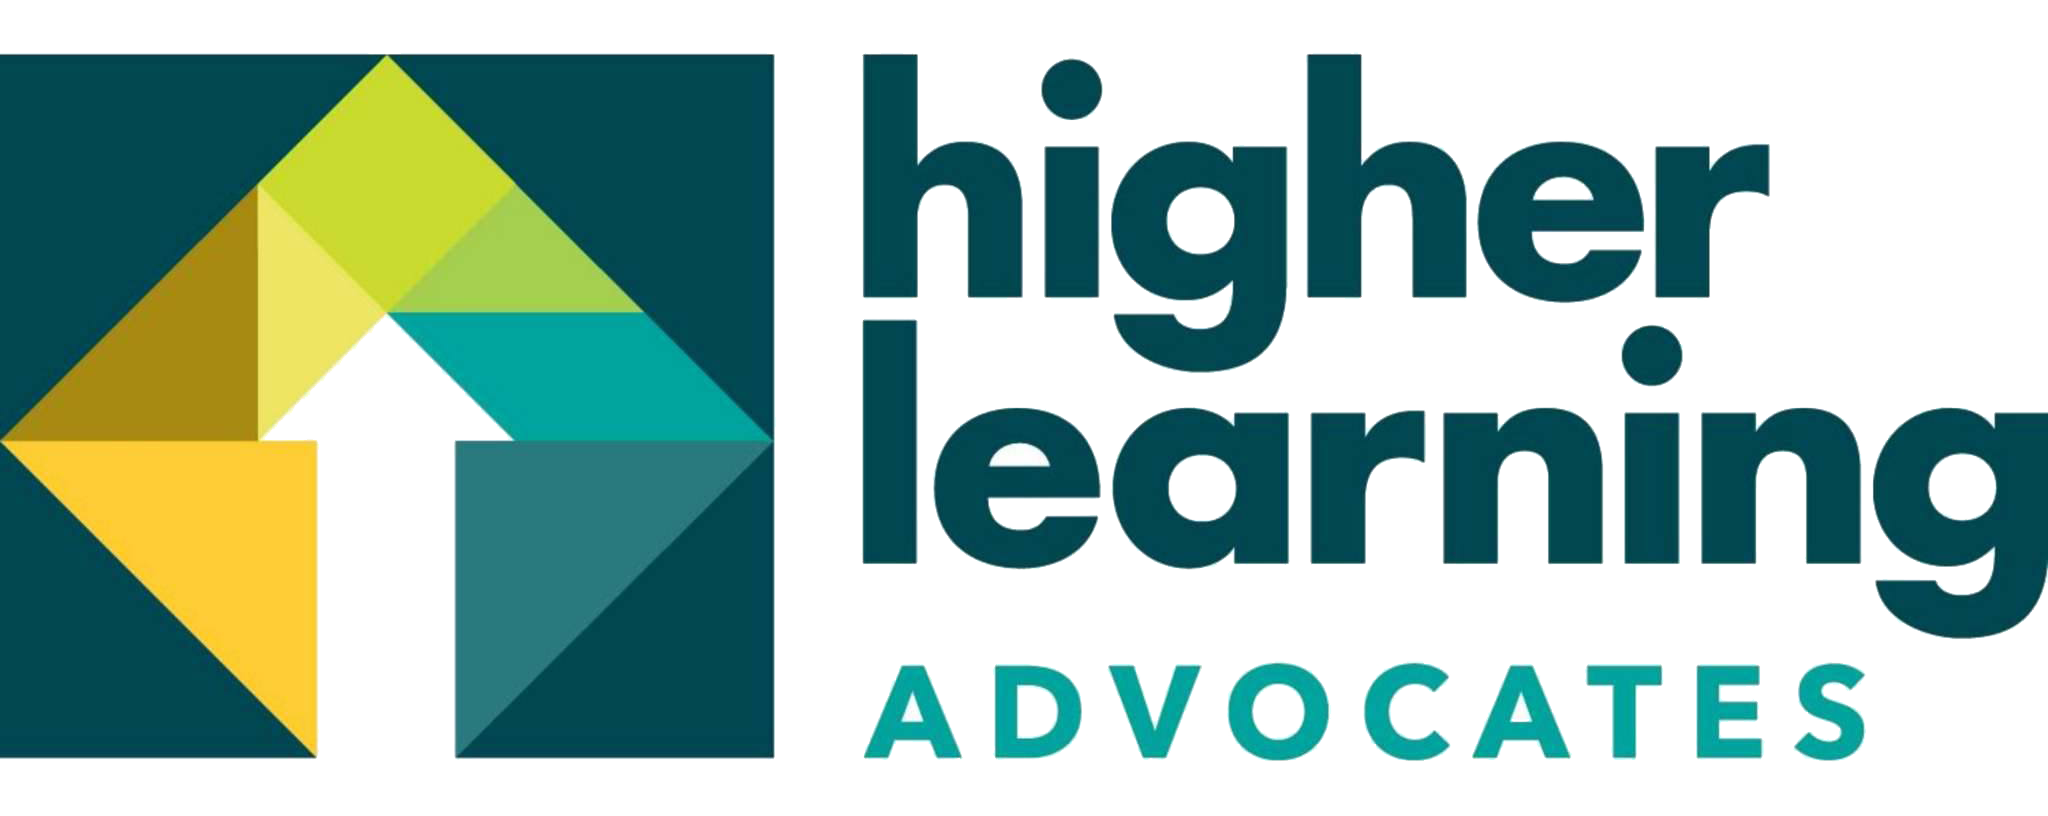 high learning advocates.png